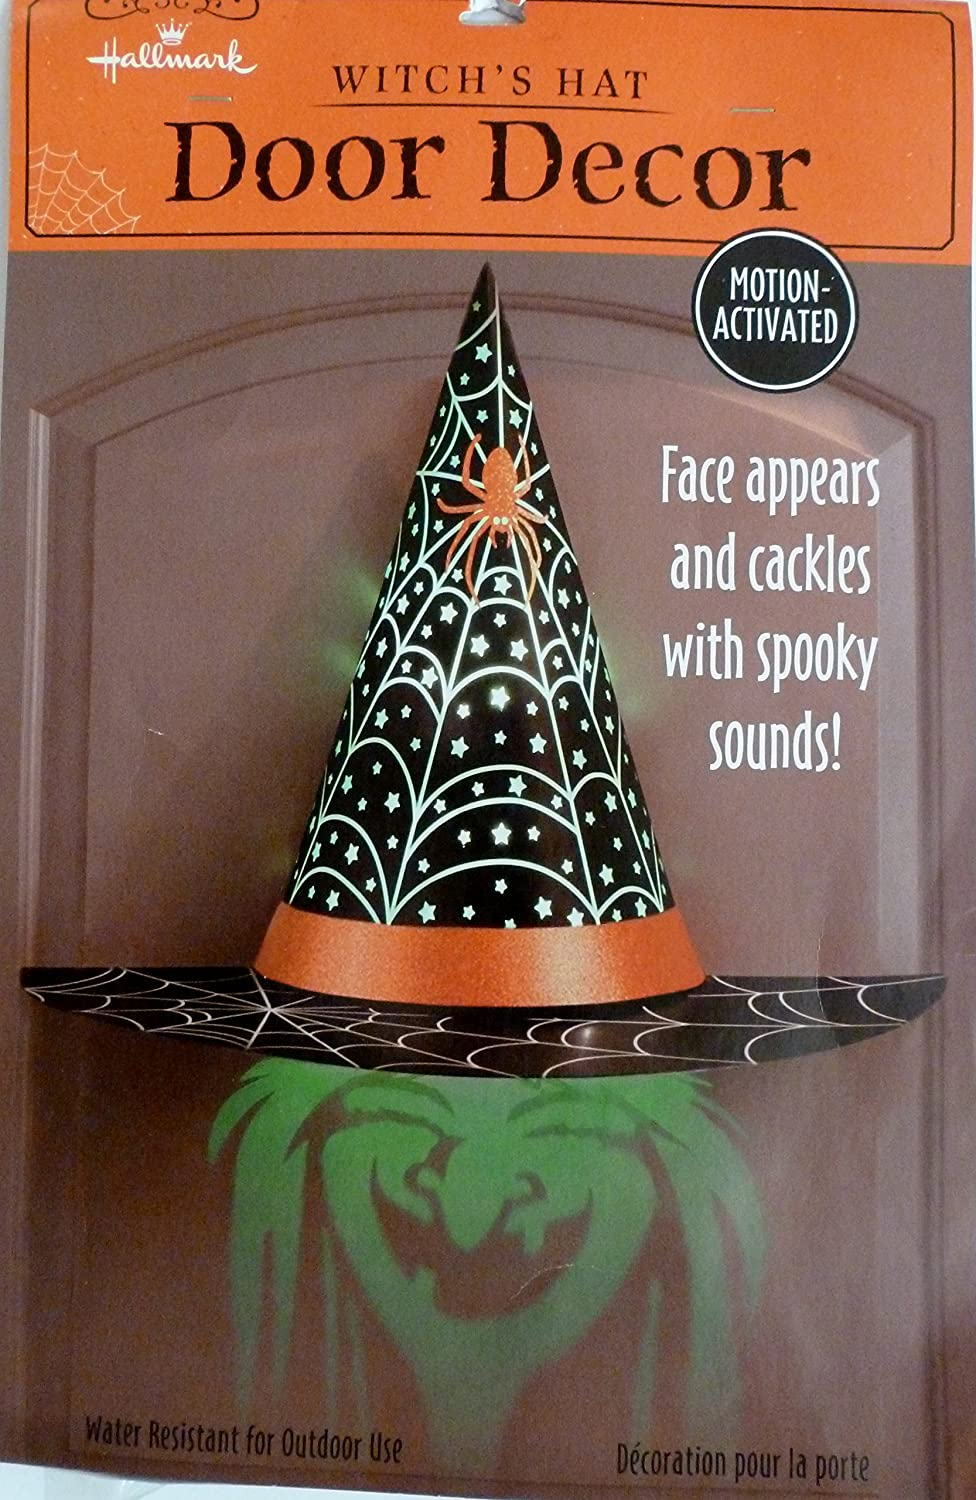 amazoncom hallmark halloween hgn5020 shadows and shrieks witchs hat door decor hallmark patio lawn garden - Hallmark Halloween Decorations